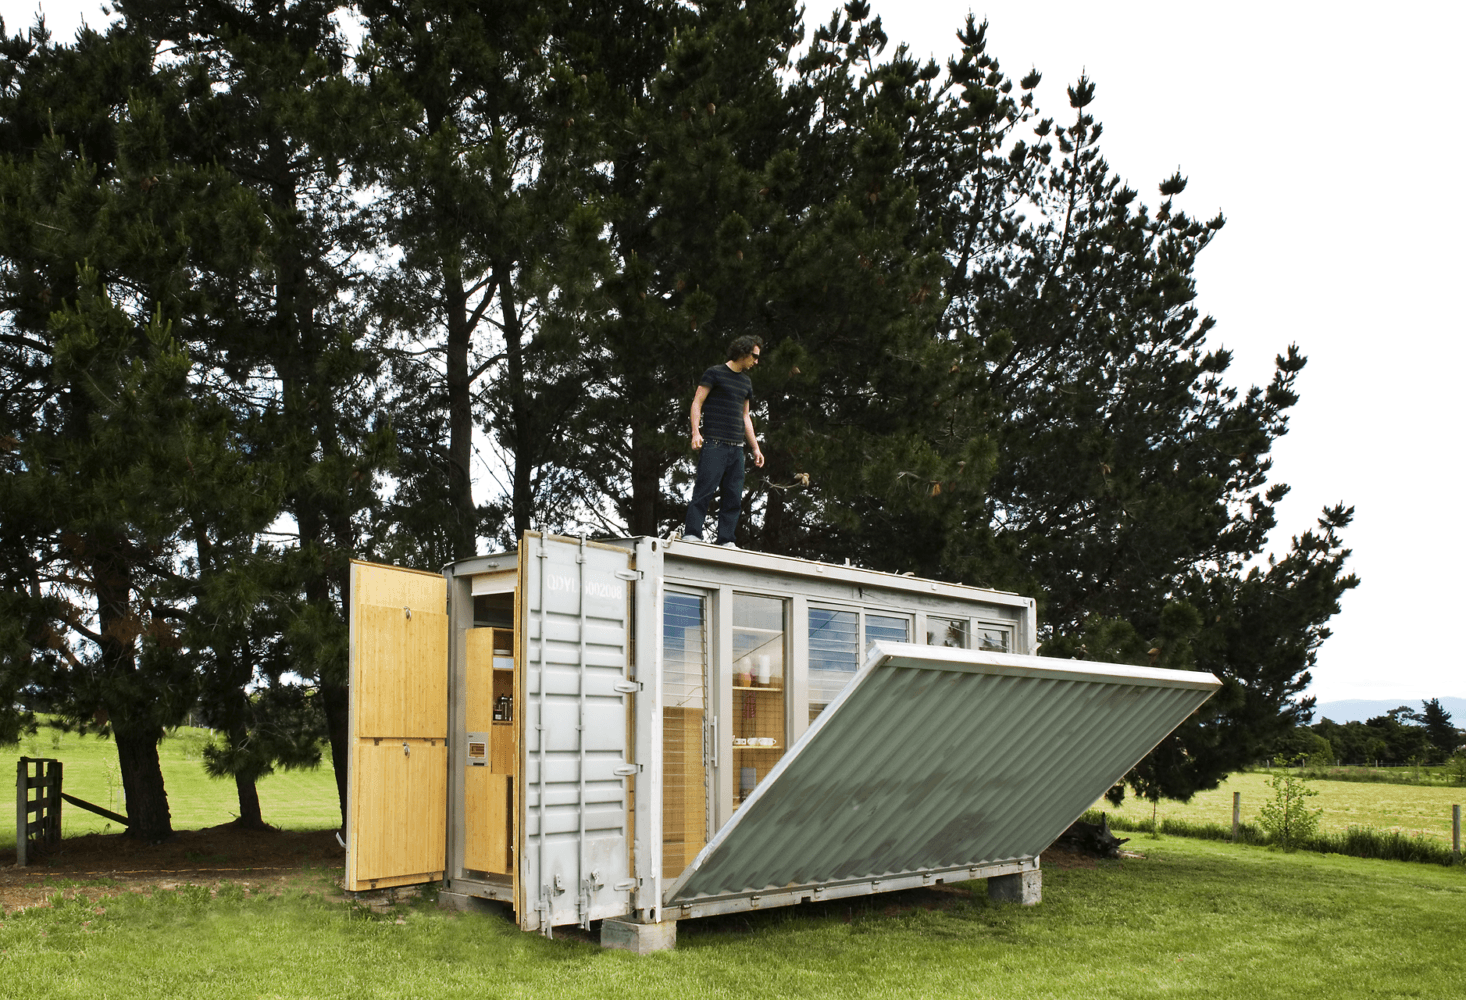 """A bach (meaning vacation cabin; it's short for """"bachelor pad"""") in New Zealand designed by Atelier Workshop. The container has built-in wood paneling, a foldout terrace, and bunk beds—all that and it's meant to be mobile. For more, see A Shipping Container Transformed into the Ultimate Holiday House."""